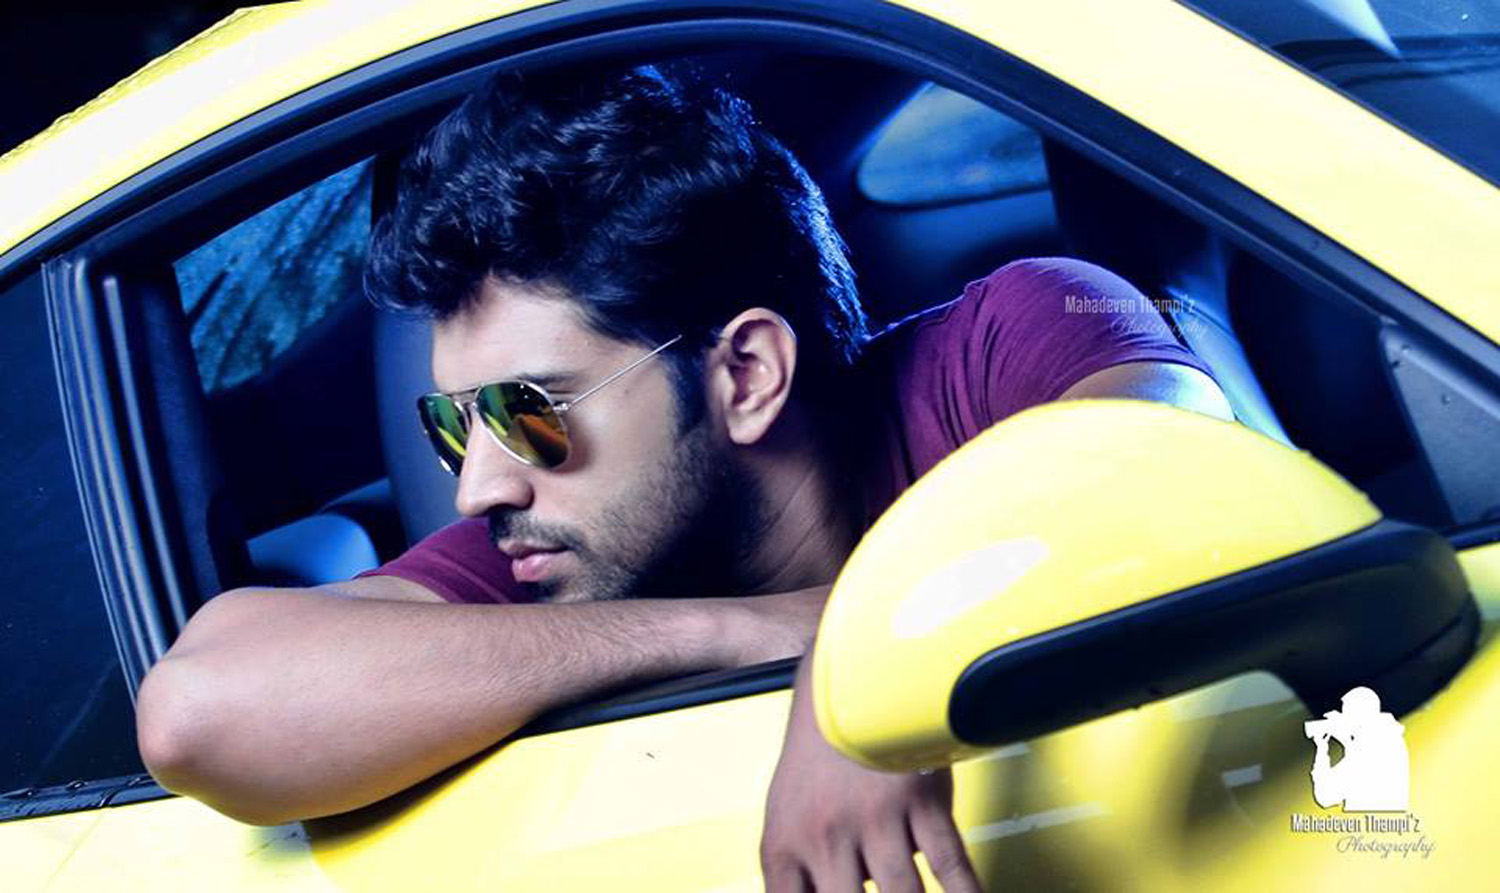 http://onlookersmedia.in/wp-content/uploads/2015/04/Nivin-Pauly-Stills-Images-Photos-Malayalam-Movie-2015-Onlookers-Media-5.jpg